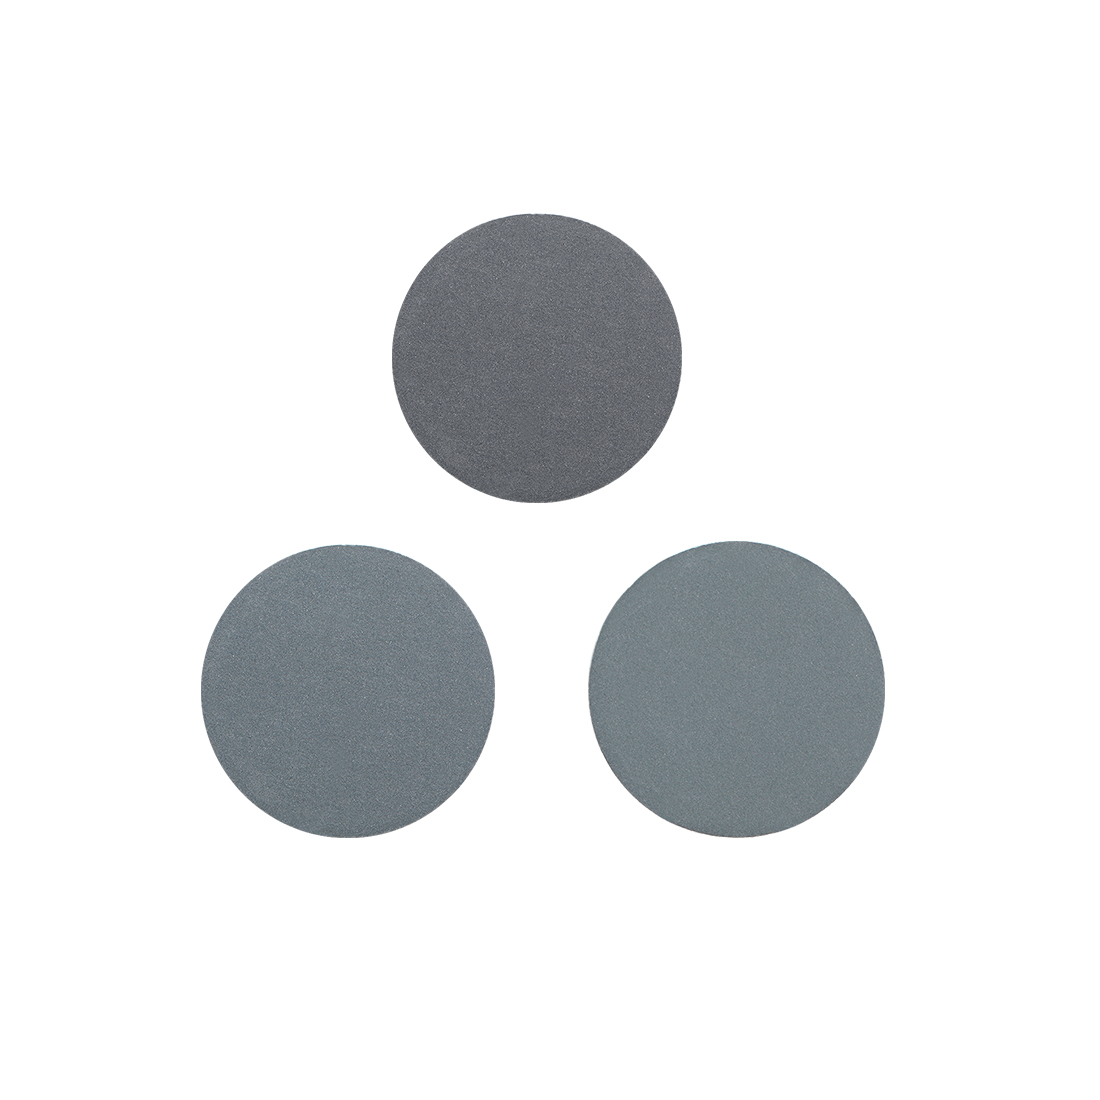 uxcell 60 Pcs 1-Inch Hook and Loop Sanding Disc Wet/Dry Silicon Carbide 1000/1200/1500 Grit Assorted for Polishing Furniture